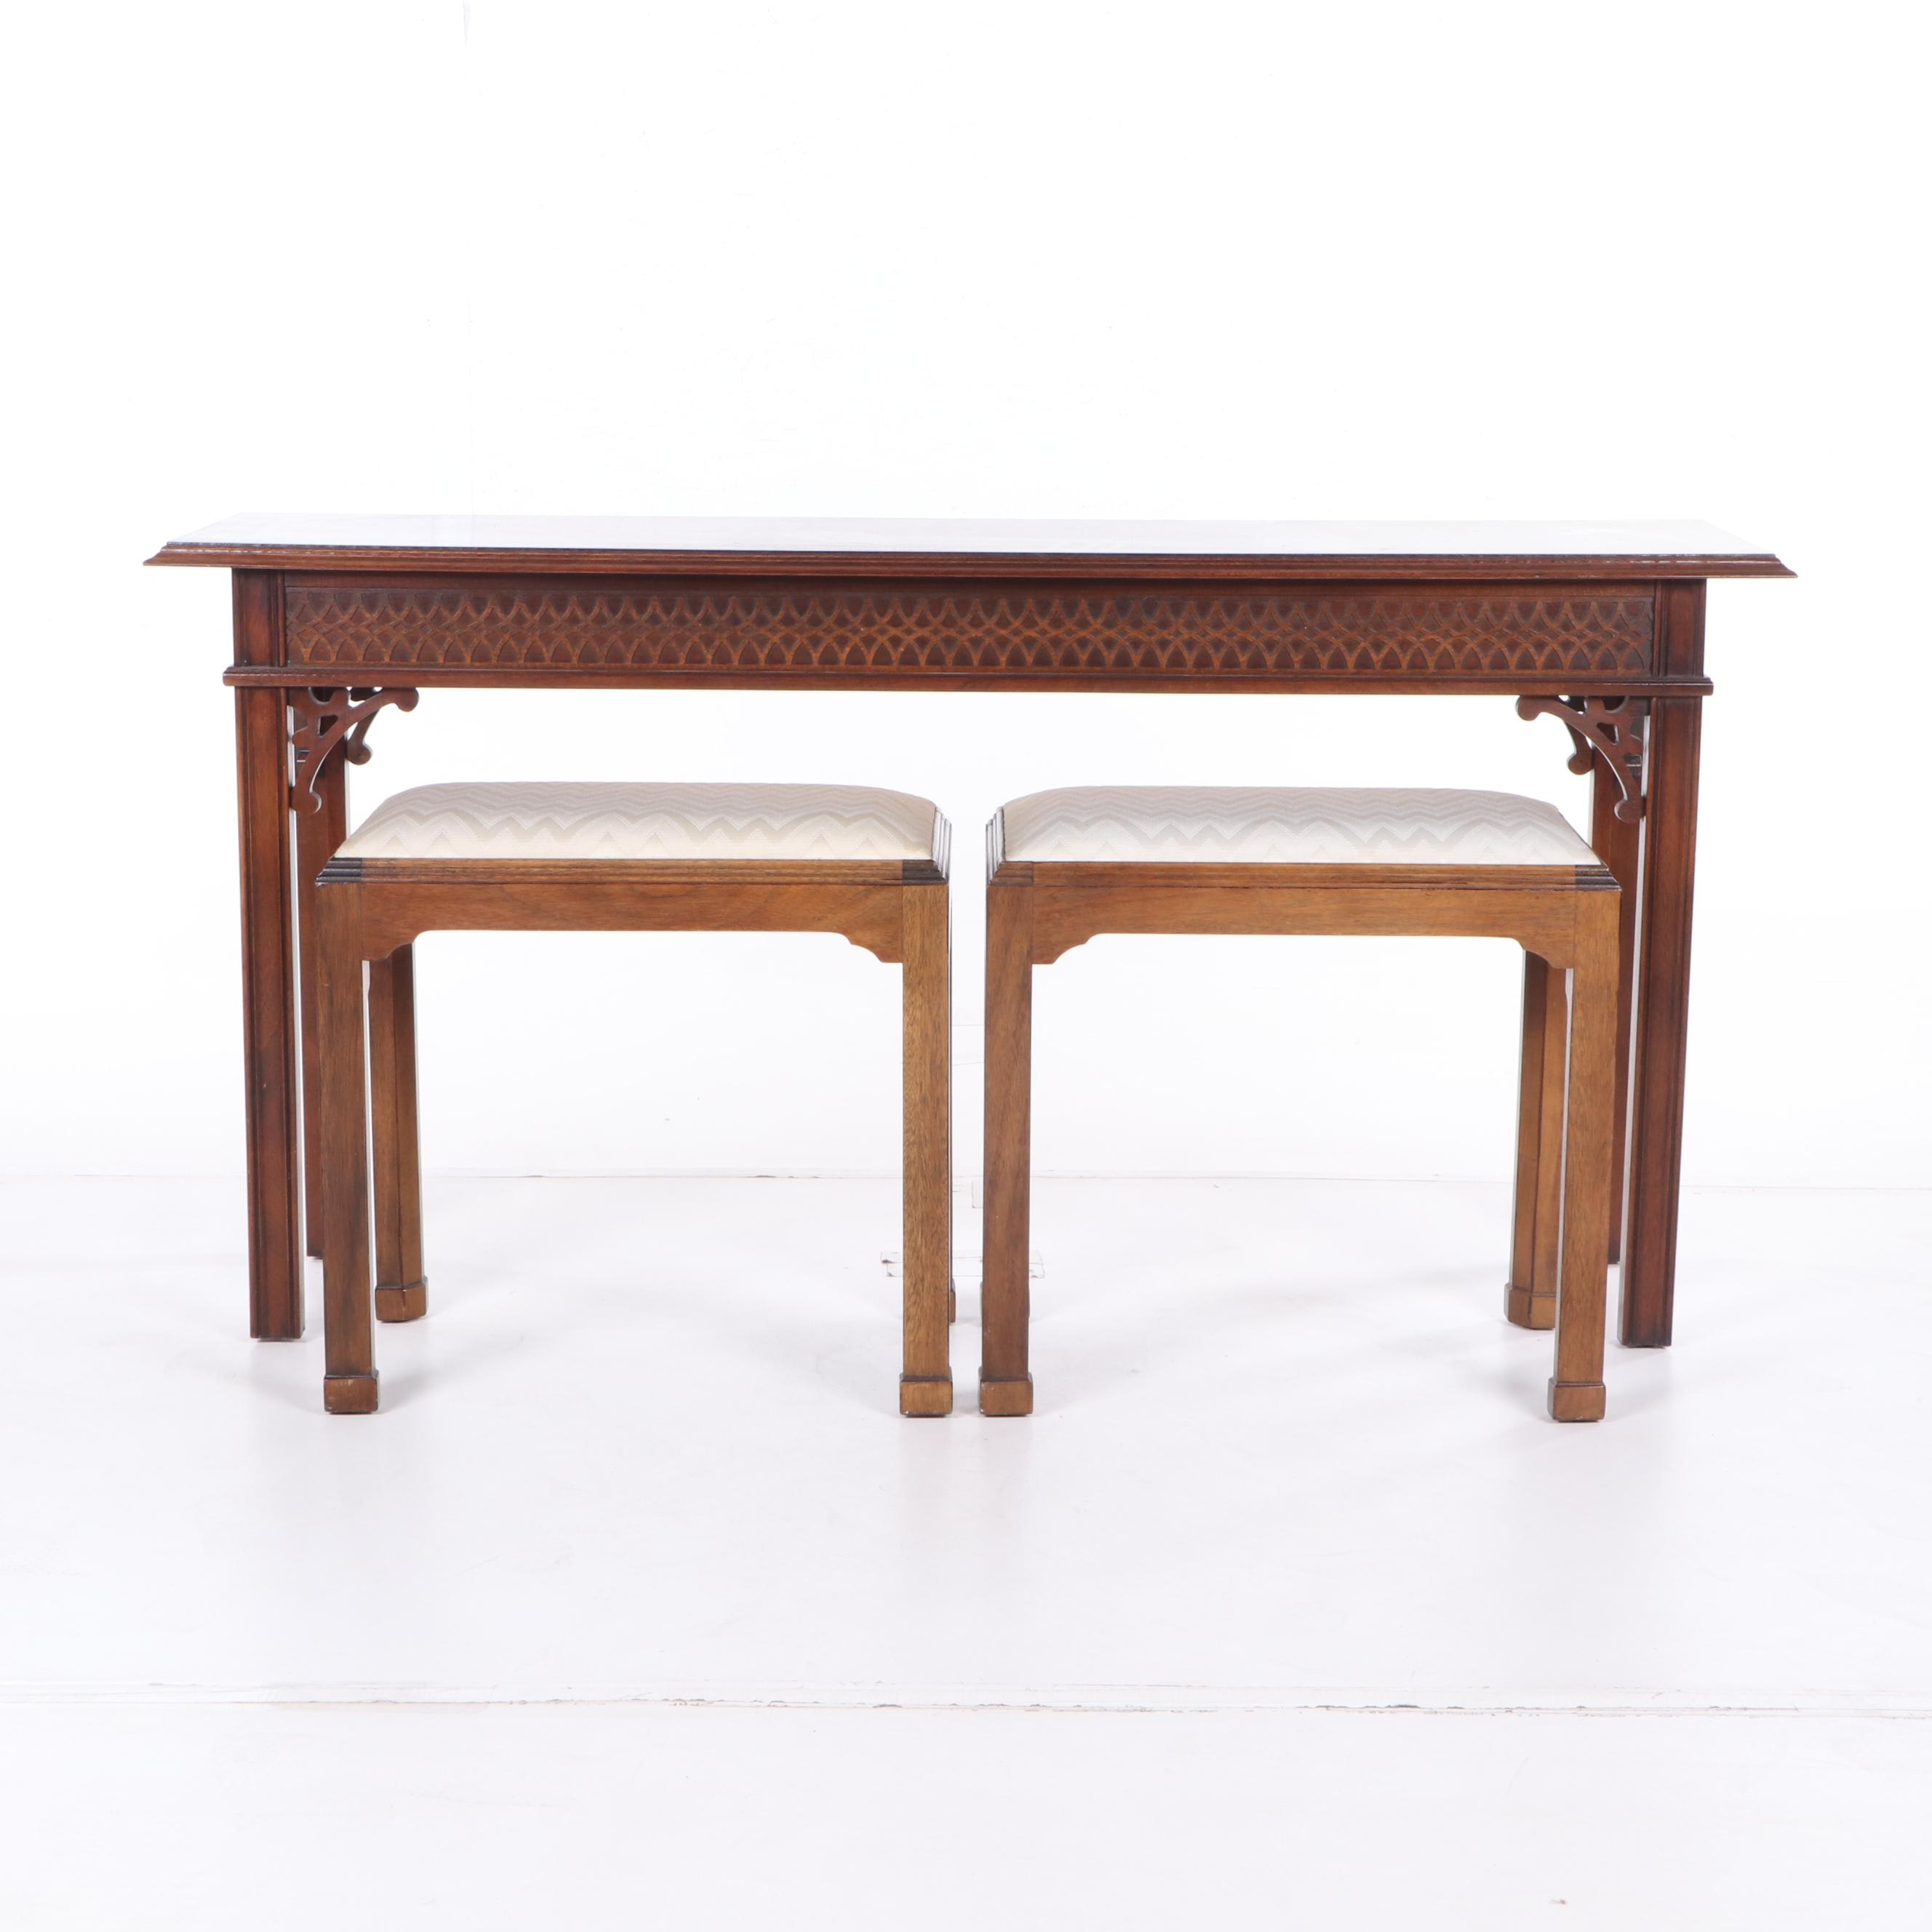 Chinese Chippendale Style Console Table and Benches, 21st Century